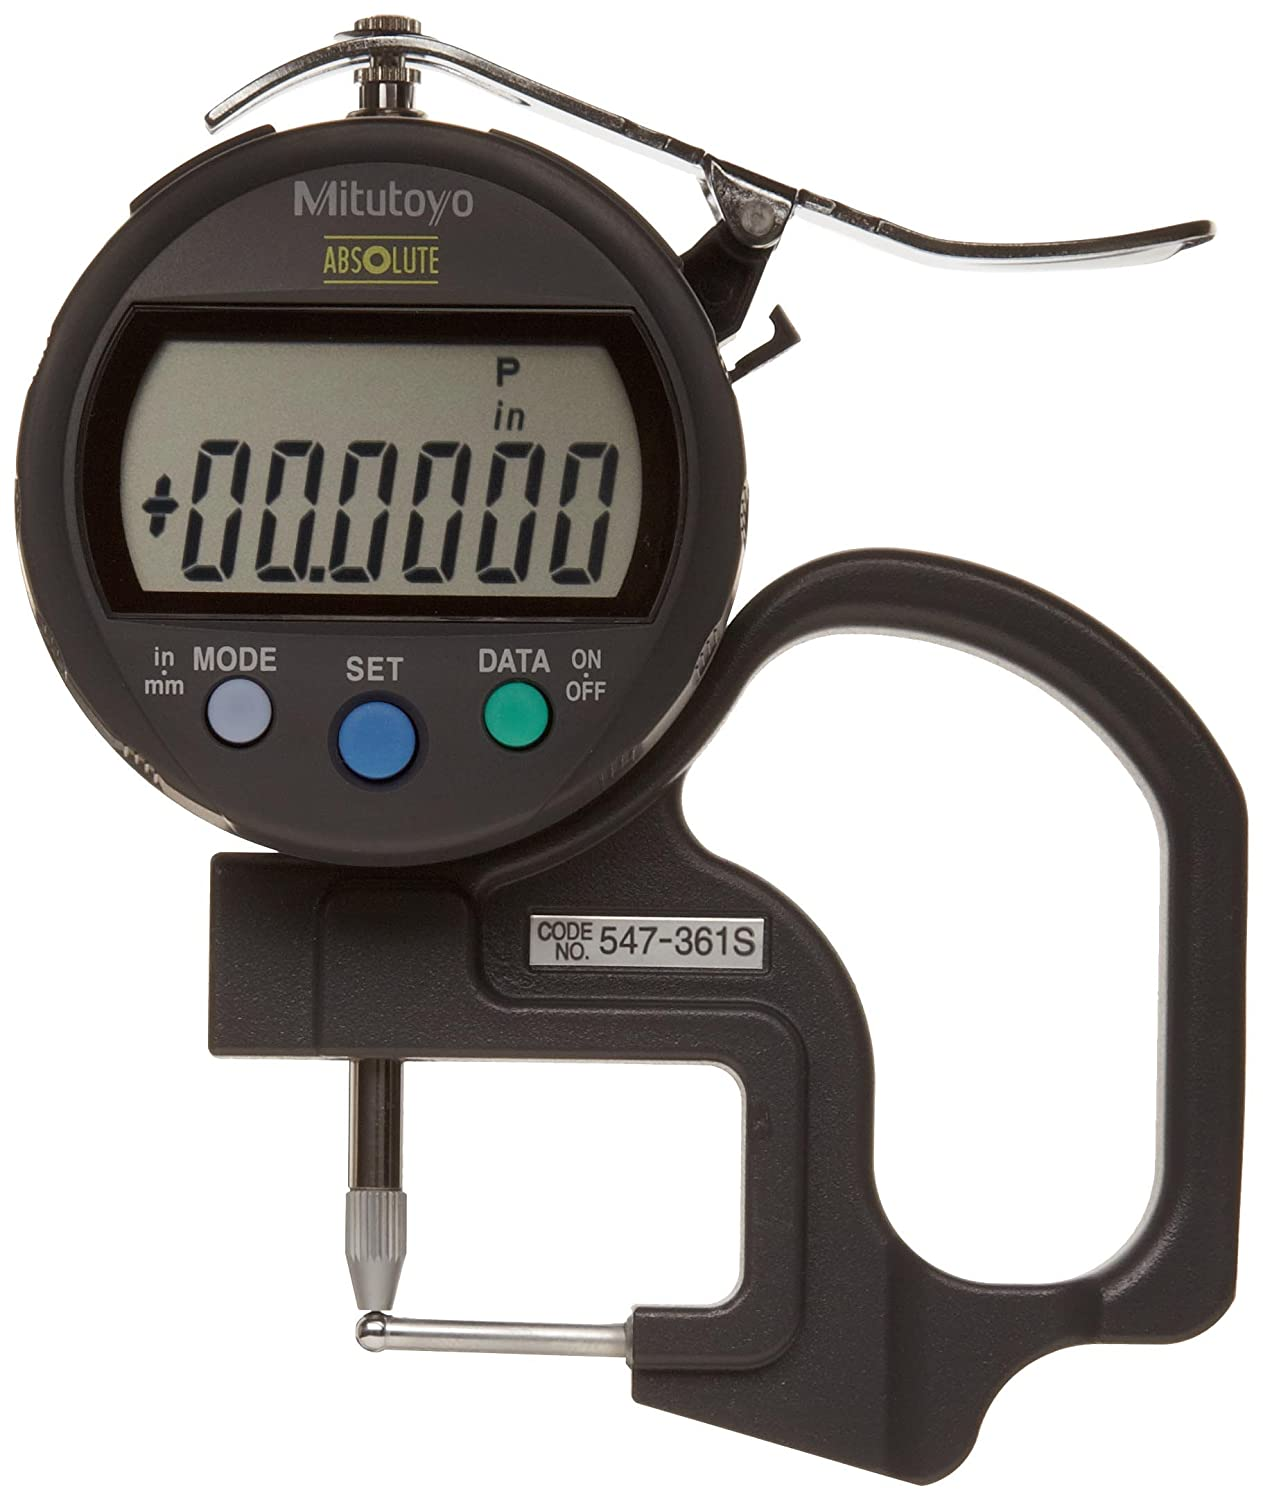 Mitutoyo 547-361S Digimatic IDC Thickness Gage, Tube Thickness Anvil, 0-0.47'/0-12mm Range, 0.0005'/0.01mm Resolution, +/-0.001' Accuracy